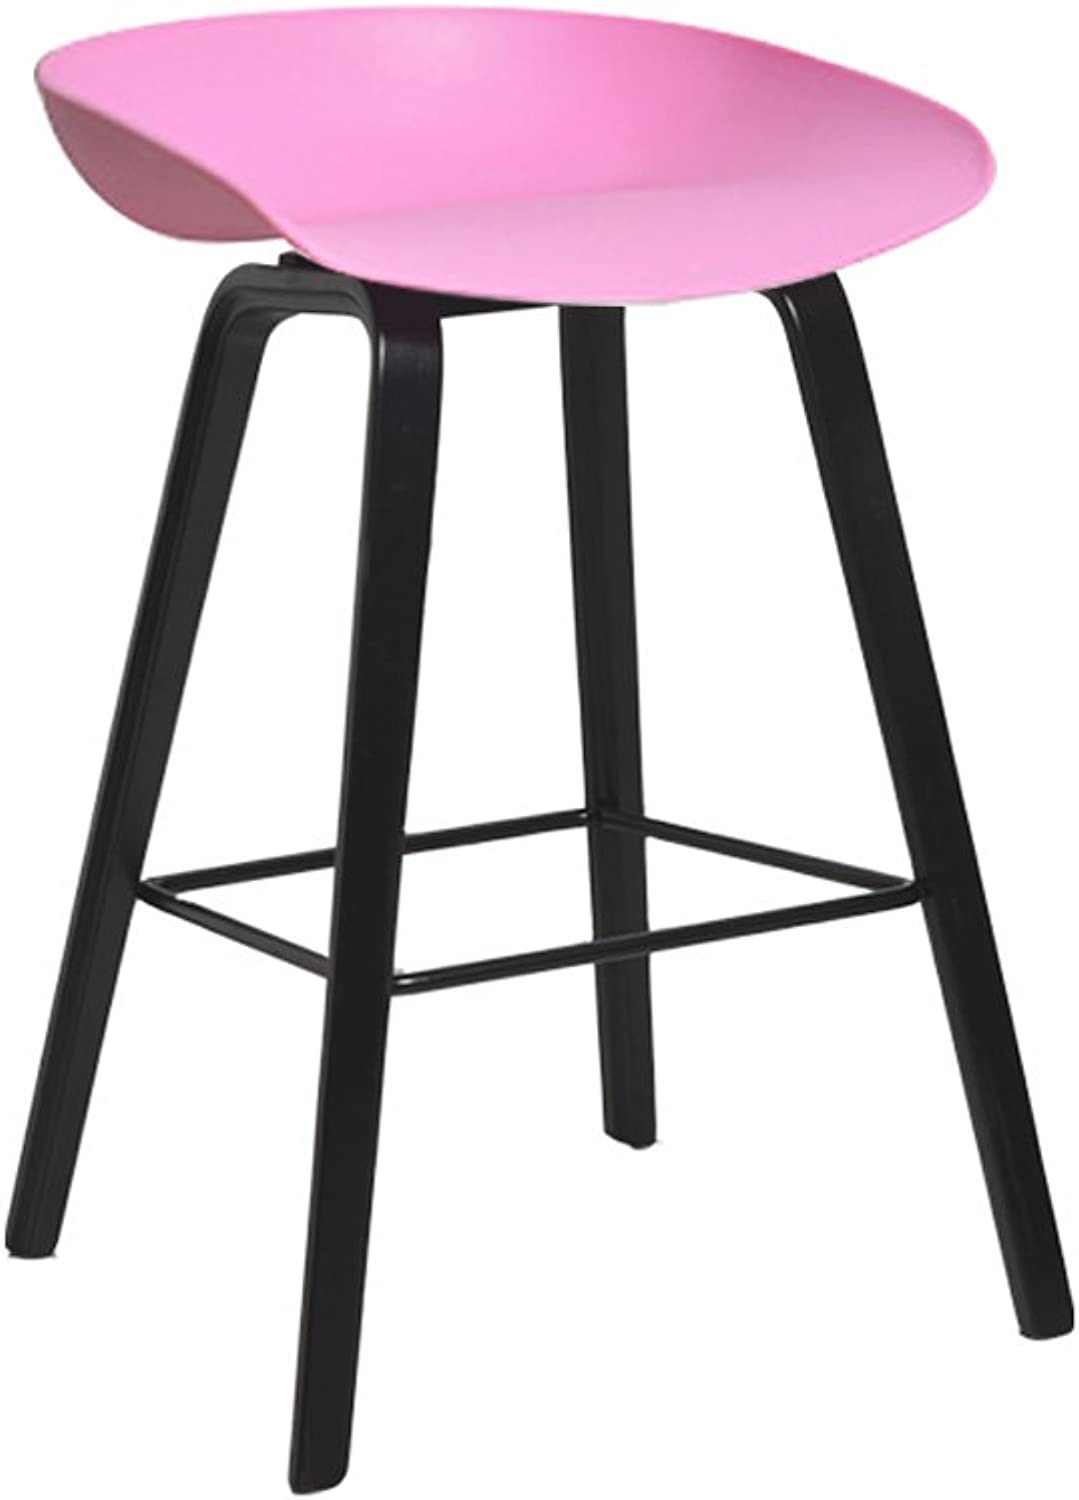 Zhang Modern Minimalist Bar Stool High Stool High Bamboo Pole Wooden Bar Chair Creative Bar 65cm (color   Pink)